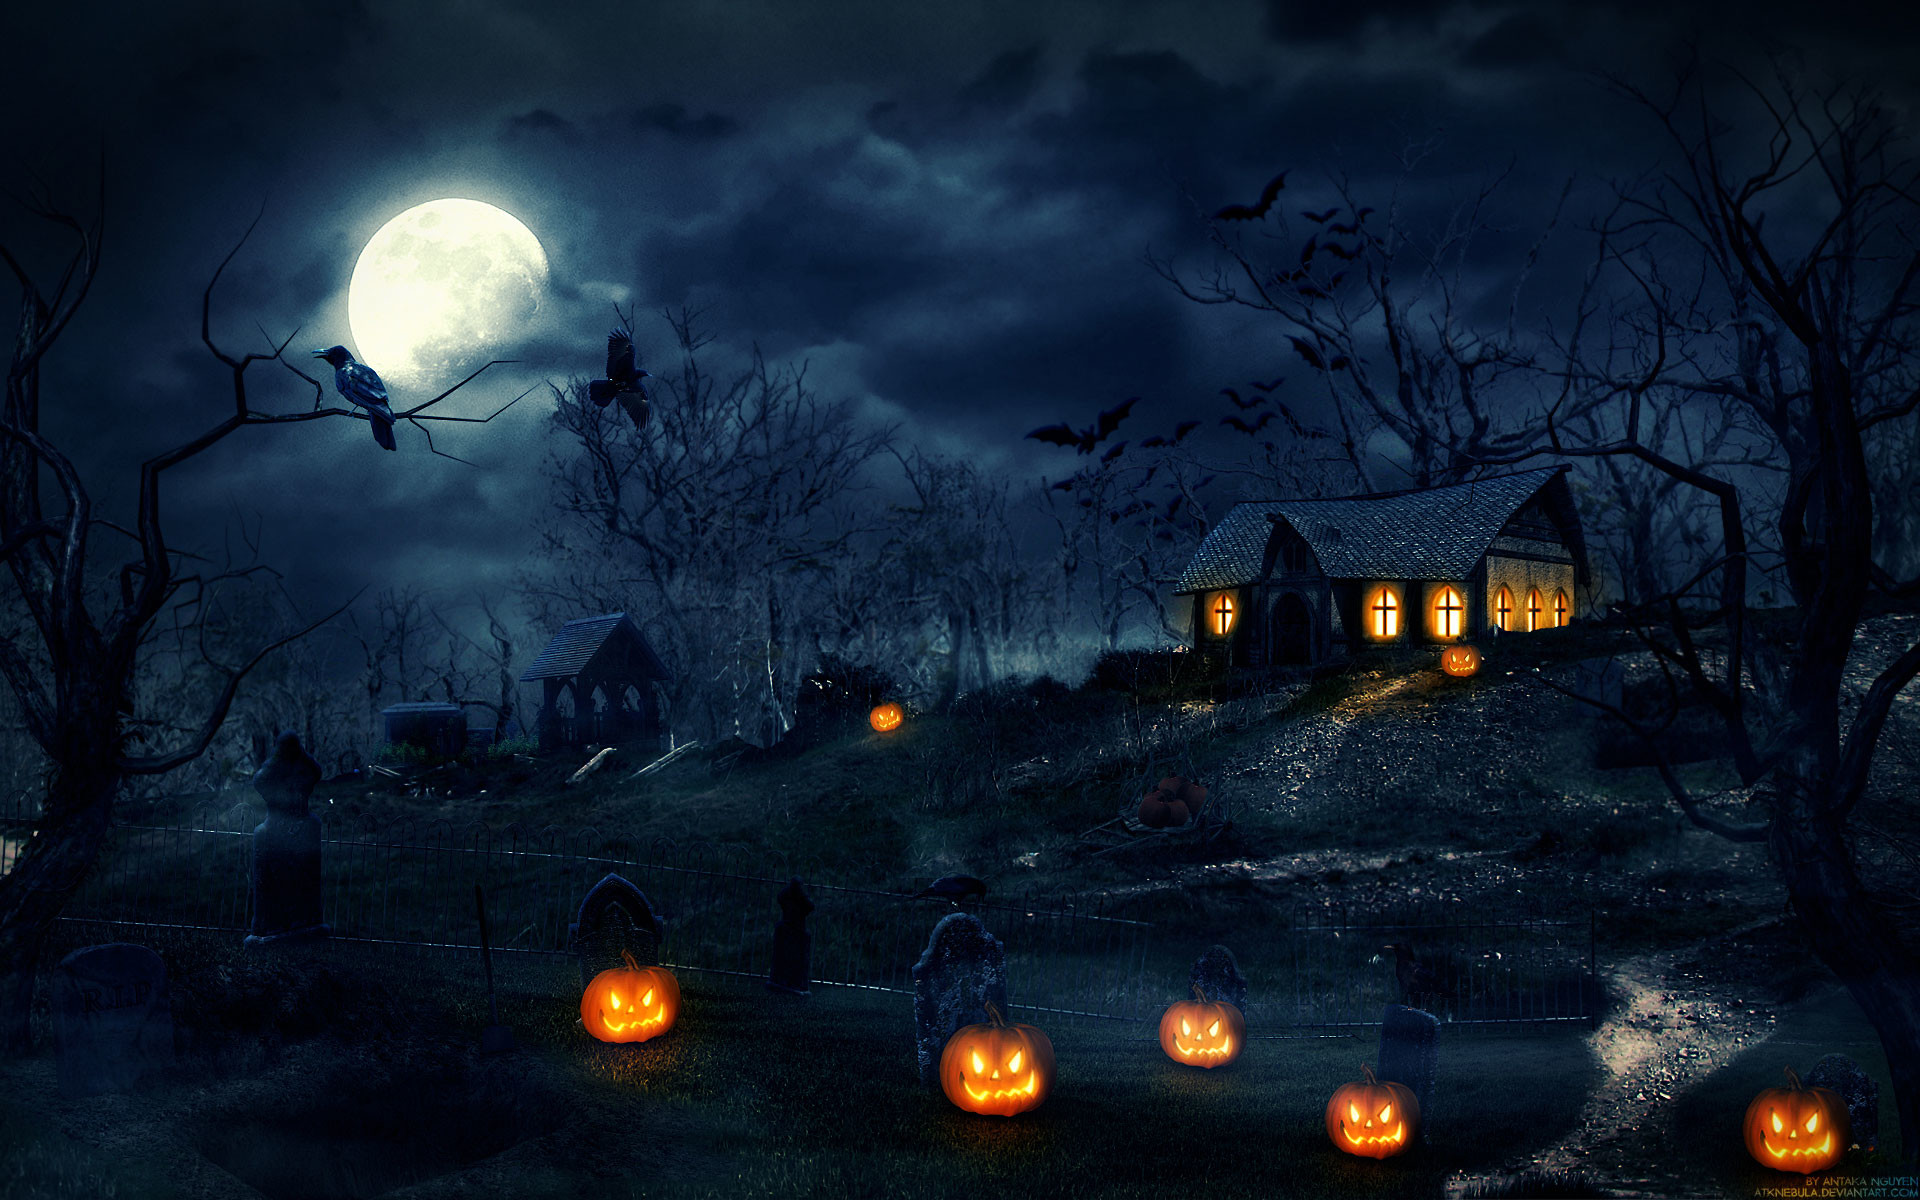 Halloween Pumpkin Wallpaper Hd.Halloween Backgrounds Wallpapers 81 Background Pictures